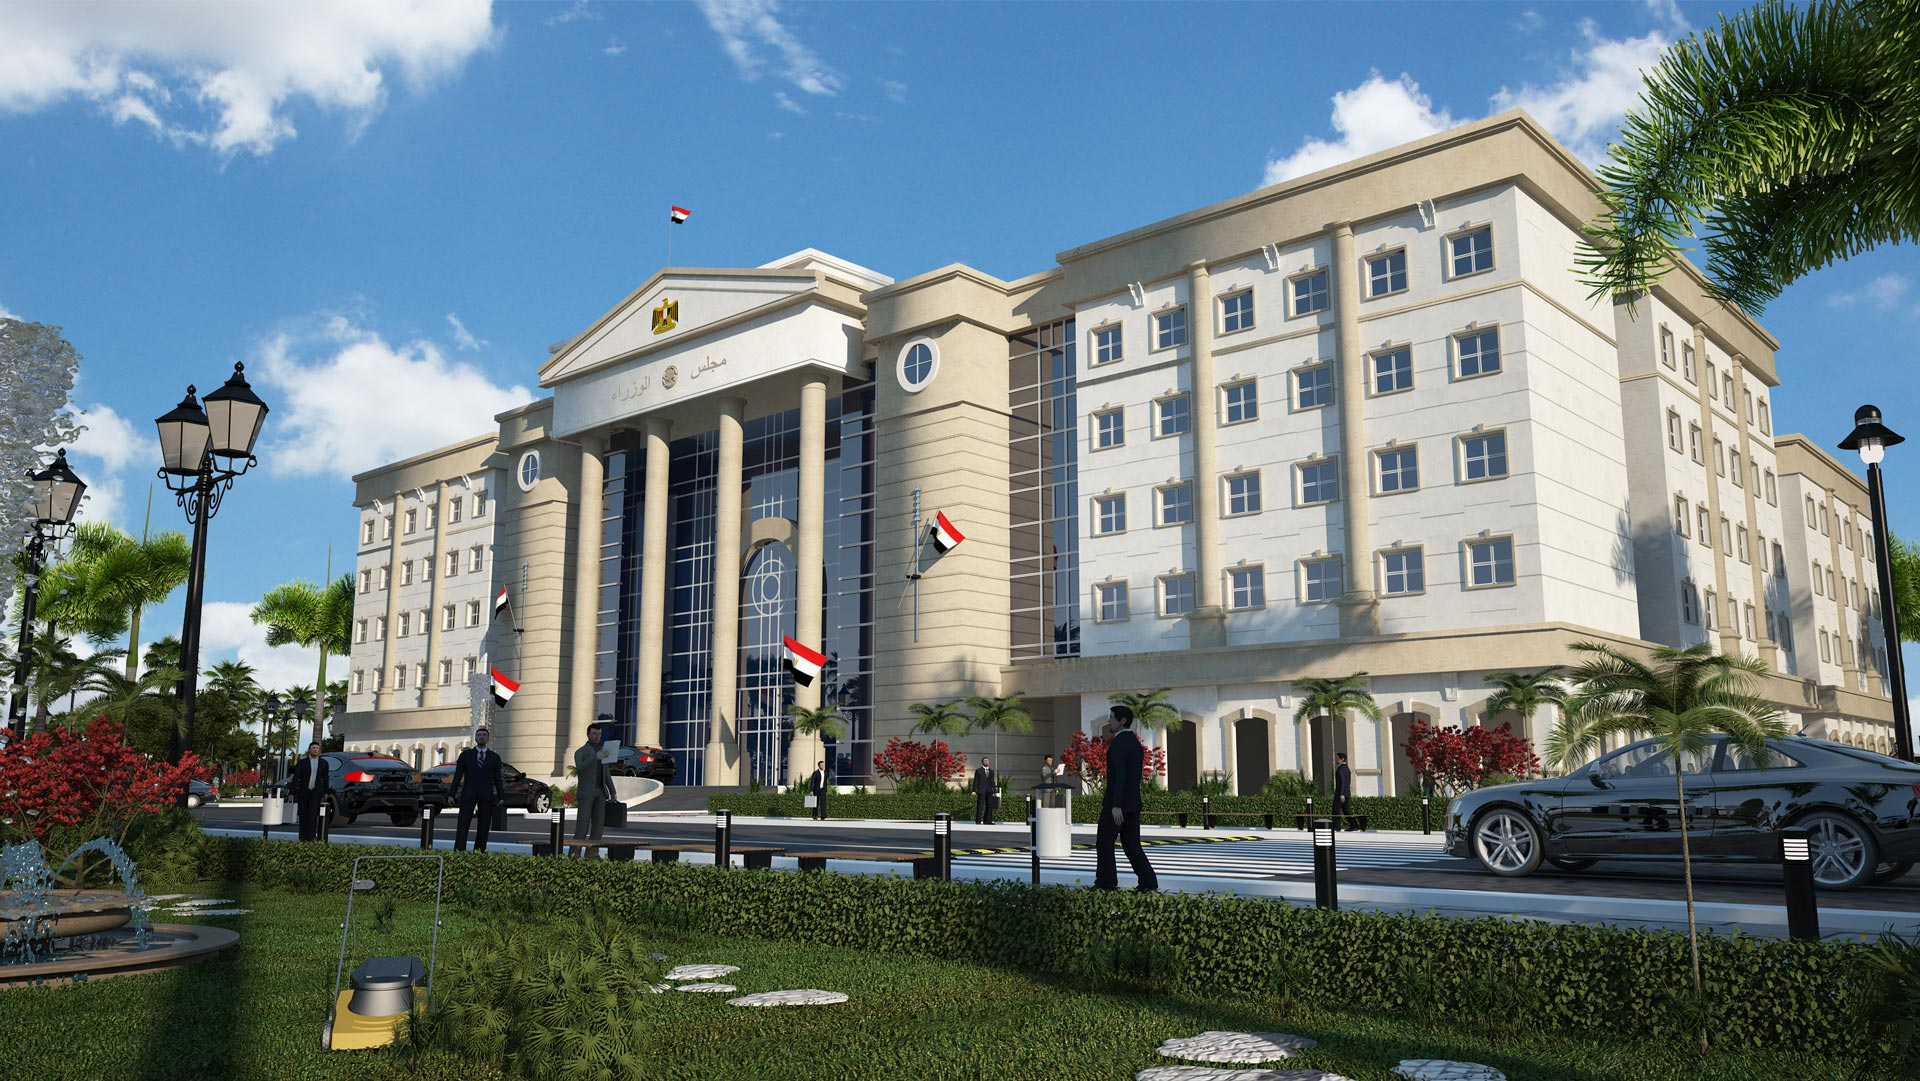 THE COUNCIL OF MINISTERS NEW ALAMEN CITY gallery